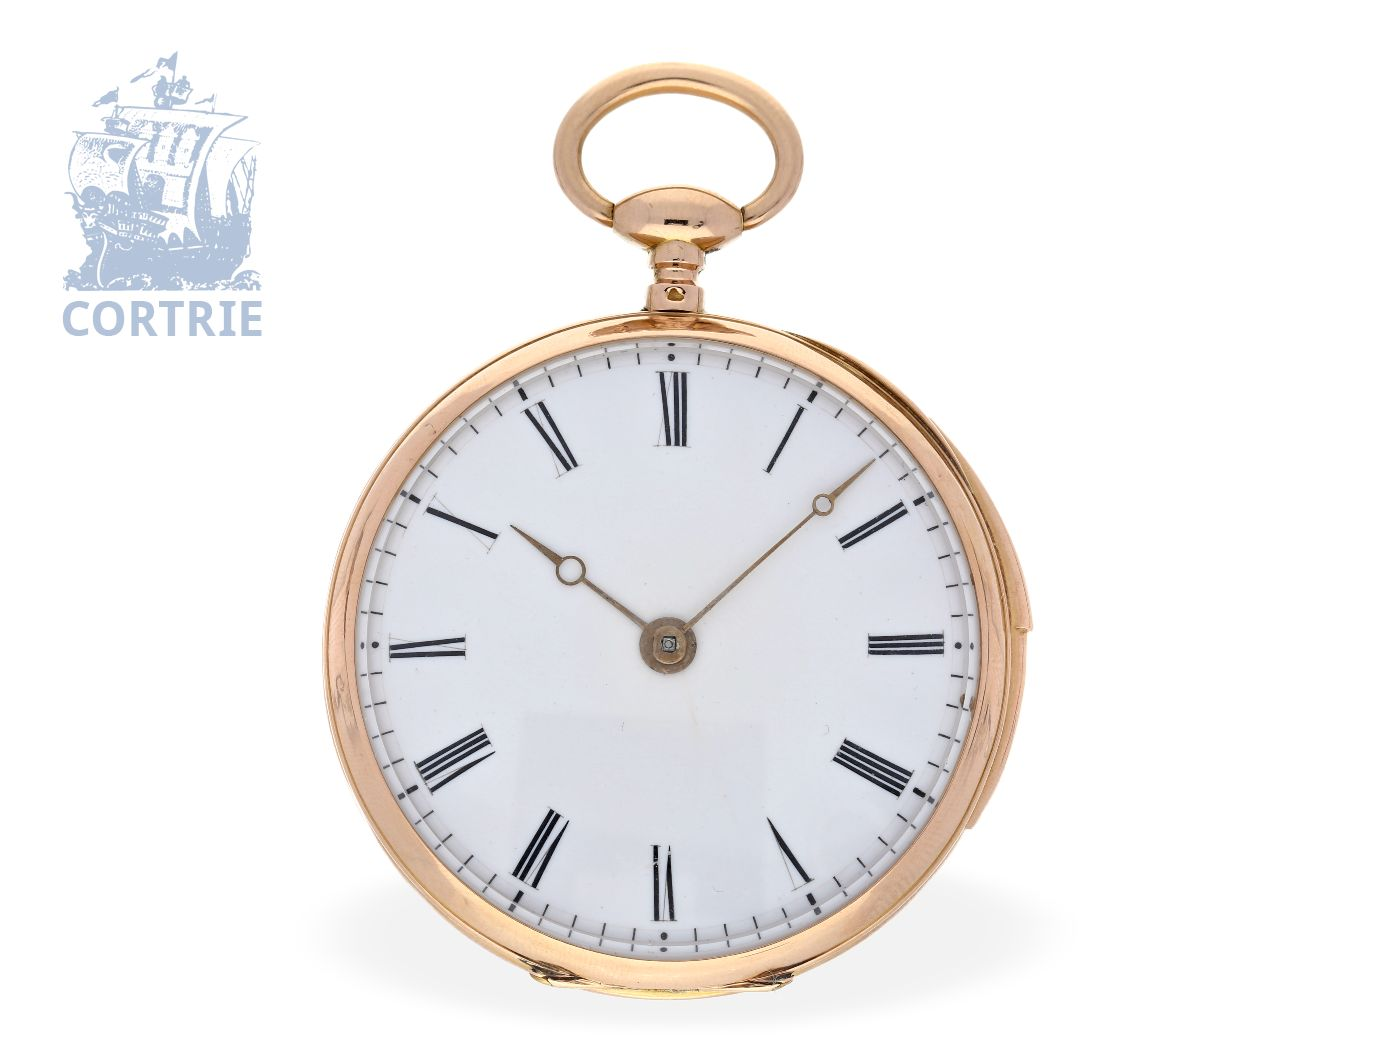 Pocket watch: technical interesting and big French repeater with fine lever movement, France ca. 1840-